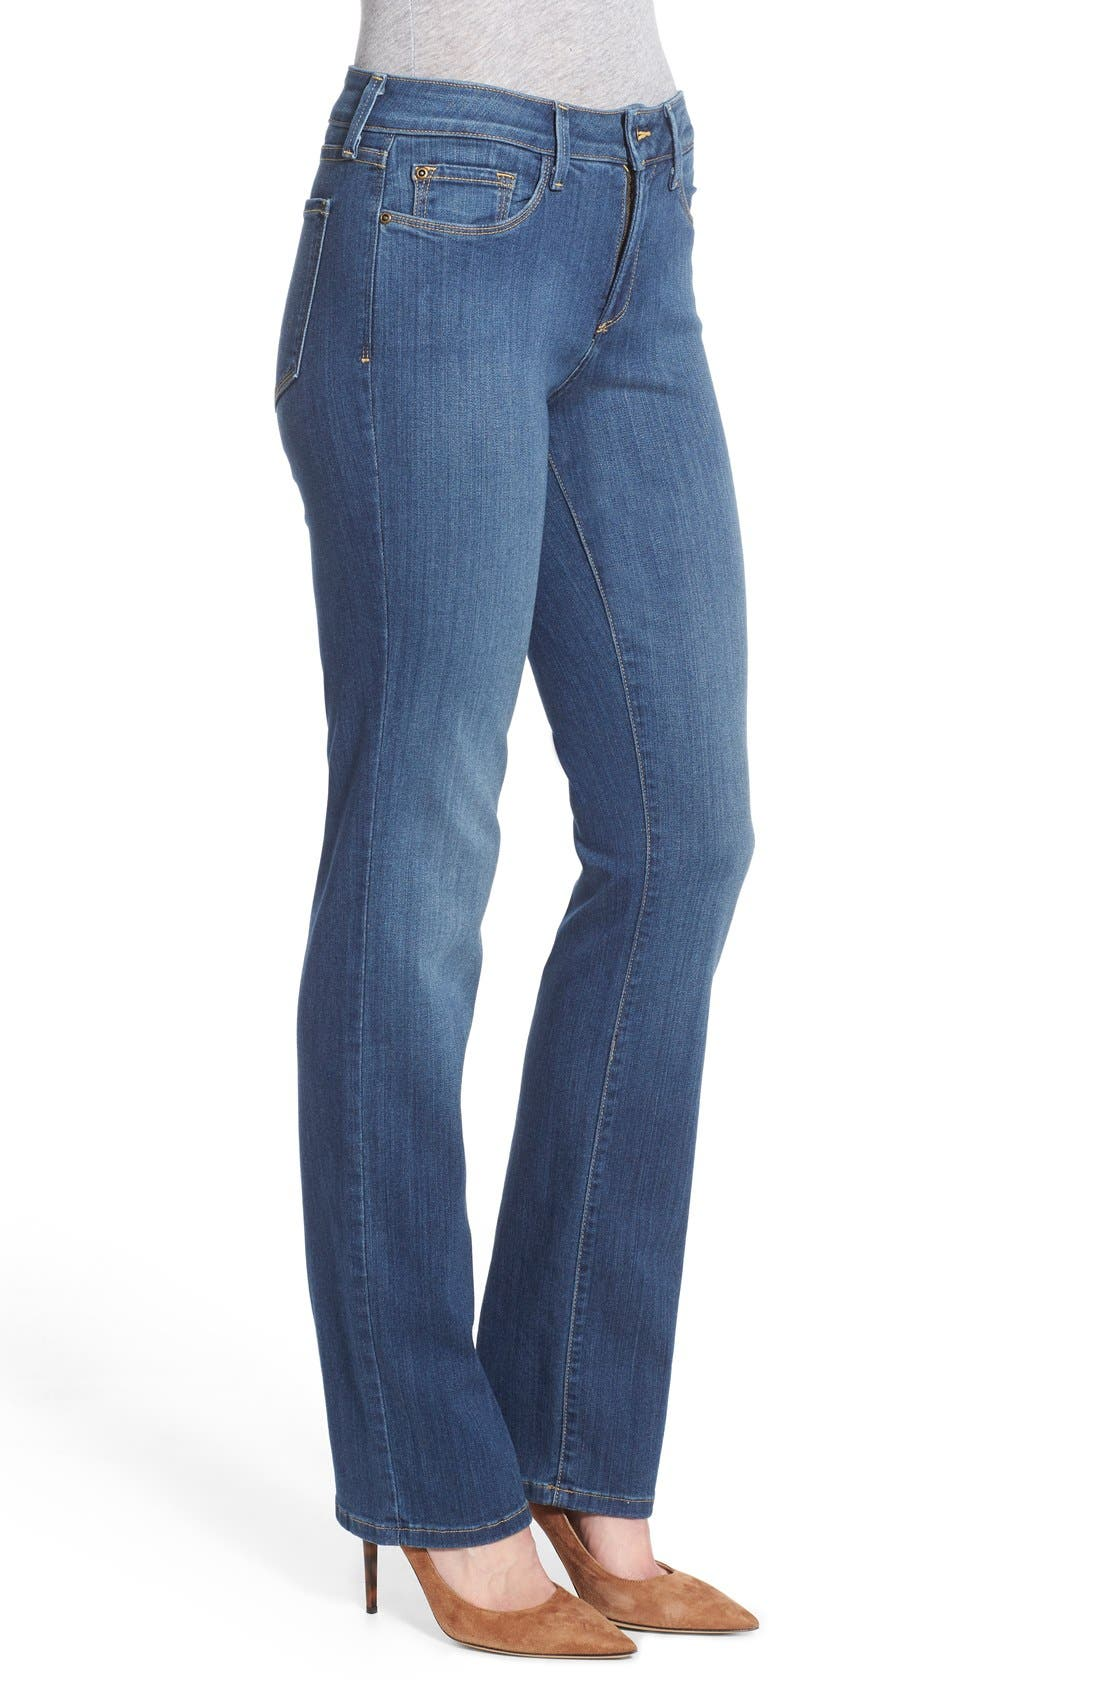 'Marilyn' Stretch Straight Leg Jeans,                             Alternate thumbnail 2, color,                             425